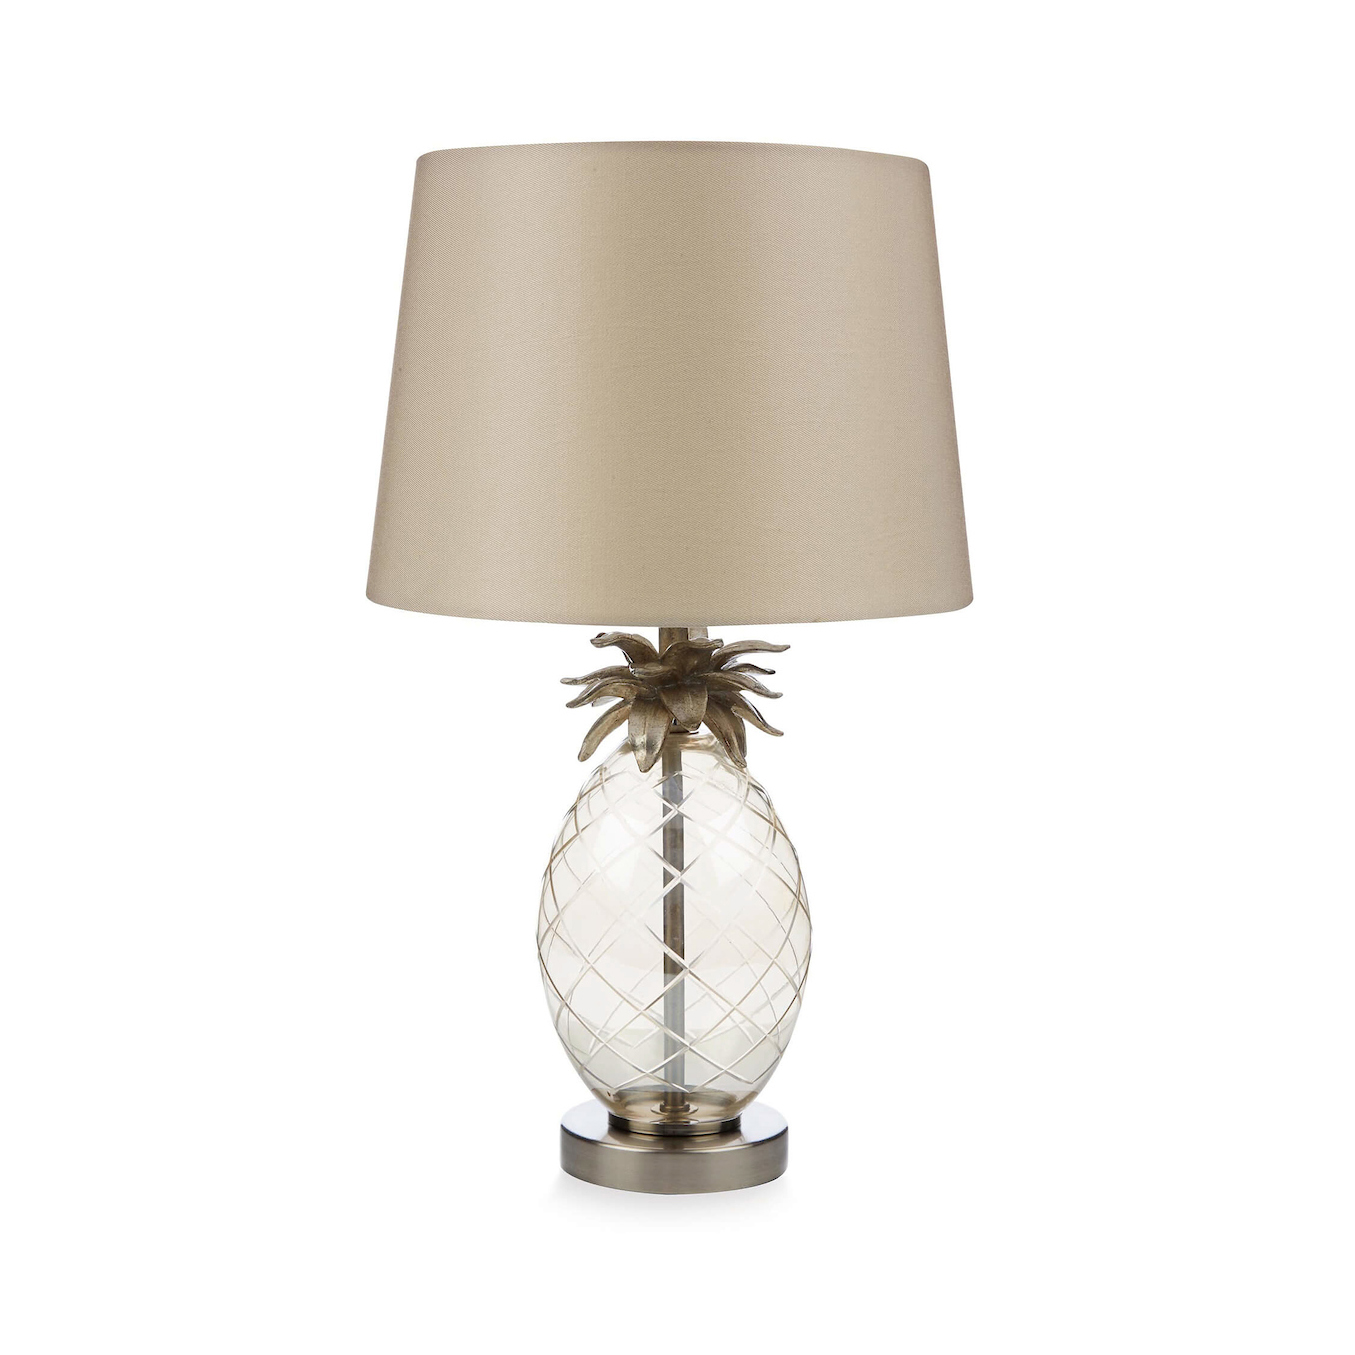 Laura Ashley Pineapple Petite Glass Table Lamp With Shade Champagne